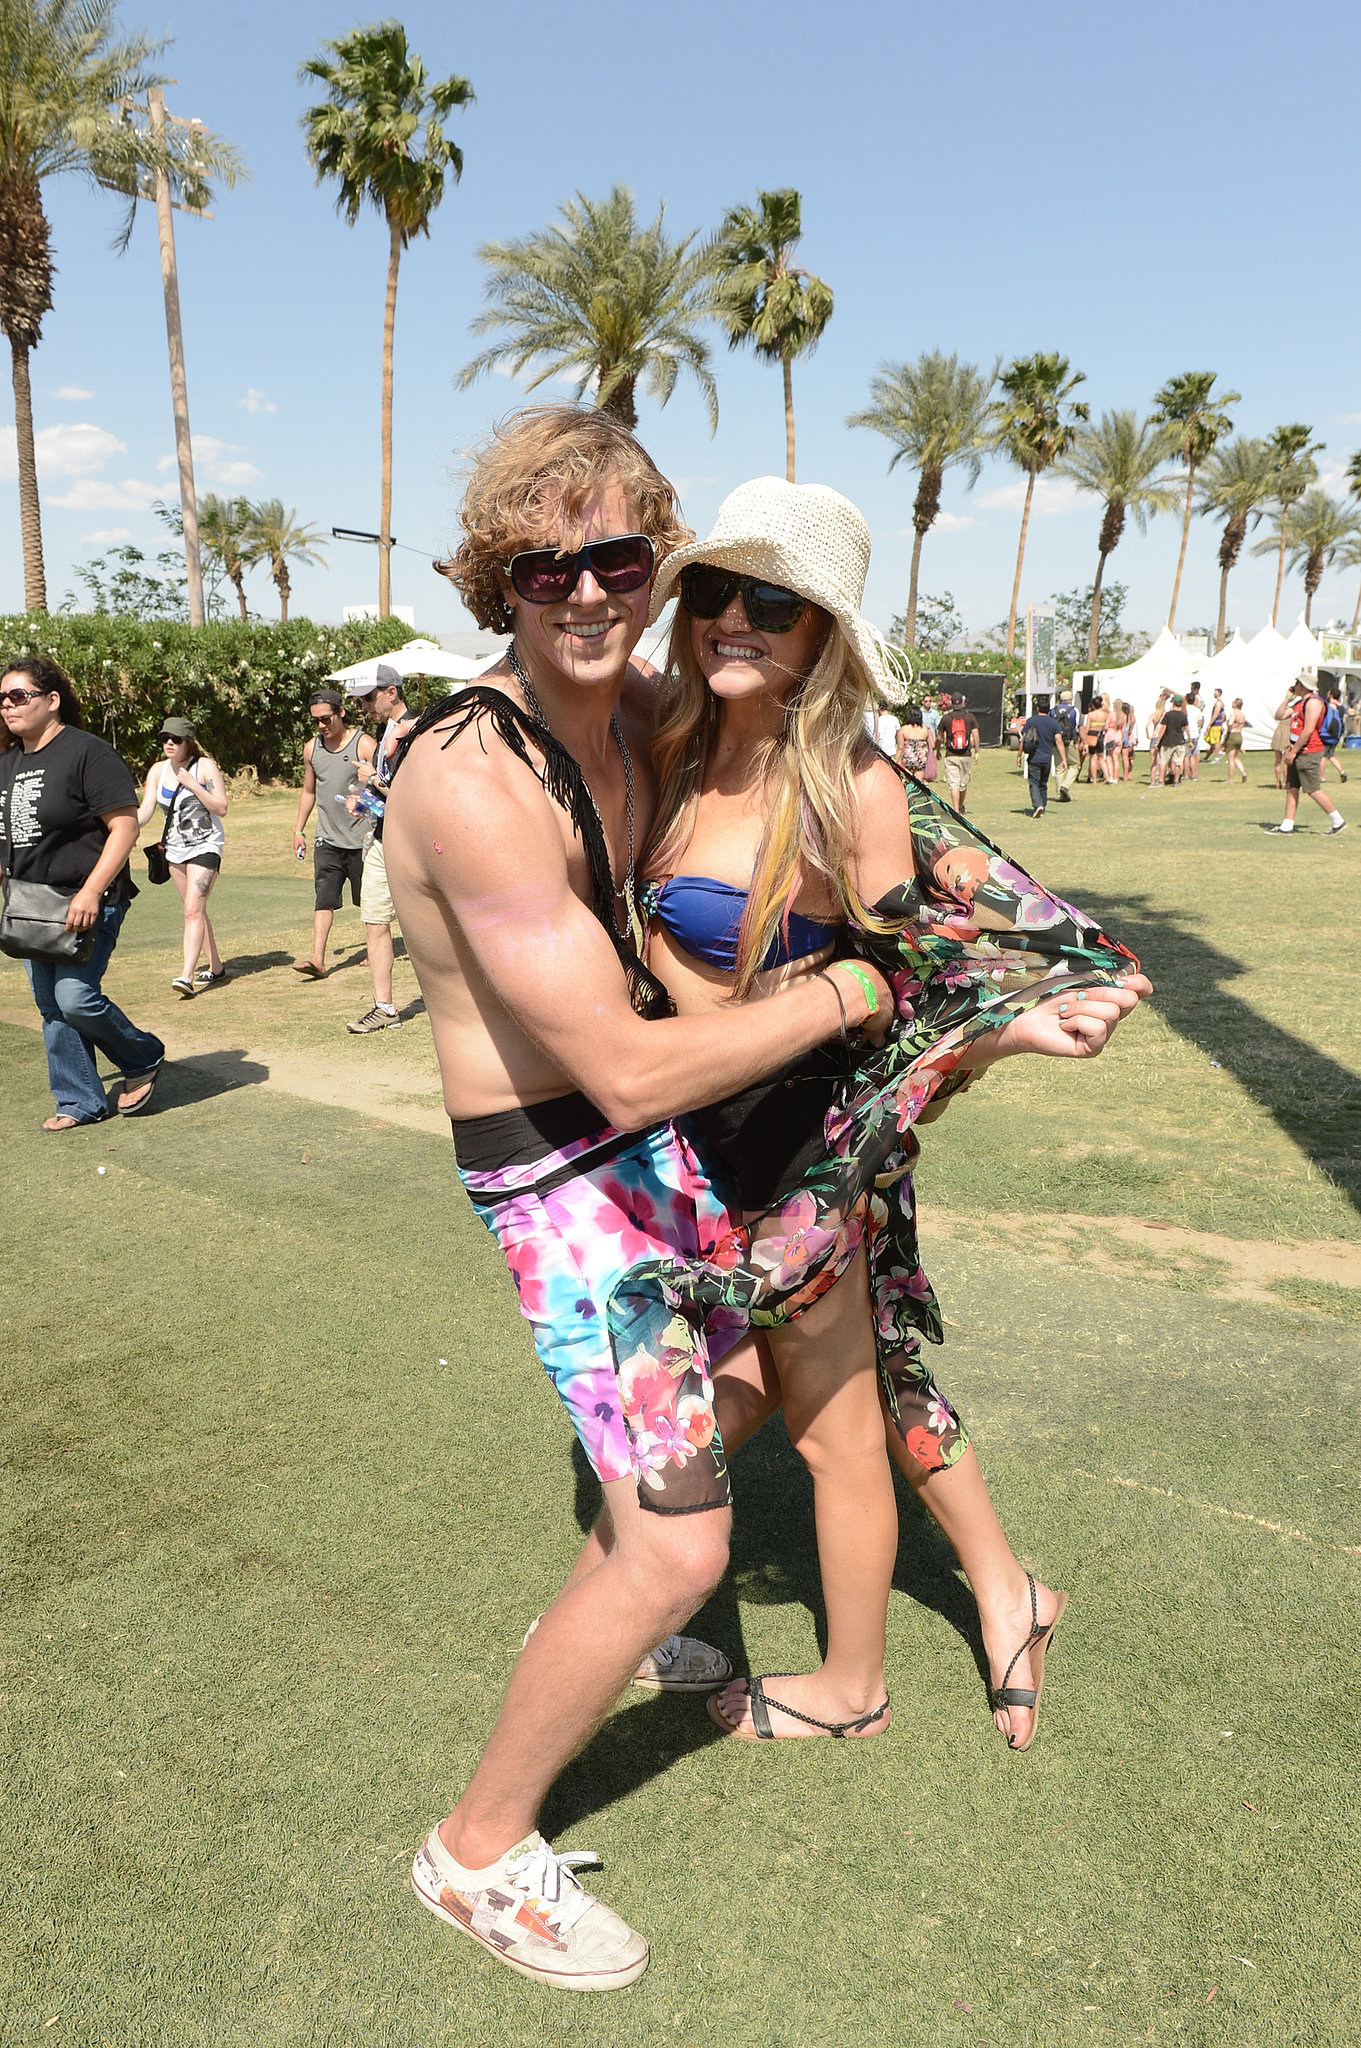 This cute Coachella twosome embraced at the Indio, CA, music festival.